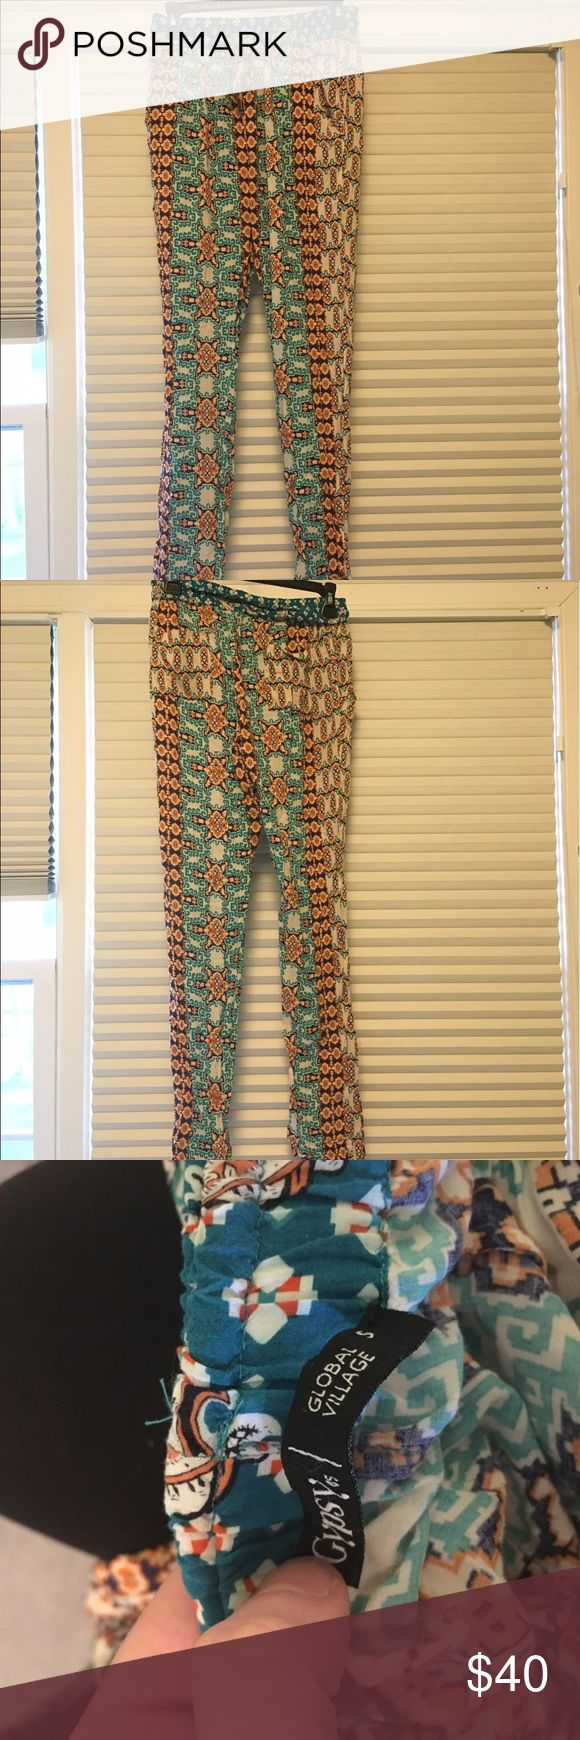 Gypsy 05 Loose-Fitting Printed Pants Super unique loose-fitting Printed pants by the brand Gypsy05 from PacSun. Pockets in the back!  Size S  In perfect condition with absolutely no signs of wear!   Originally retailed for $178 Gypsy 05 Pants